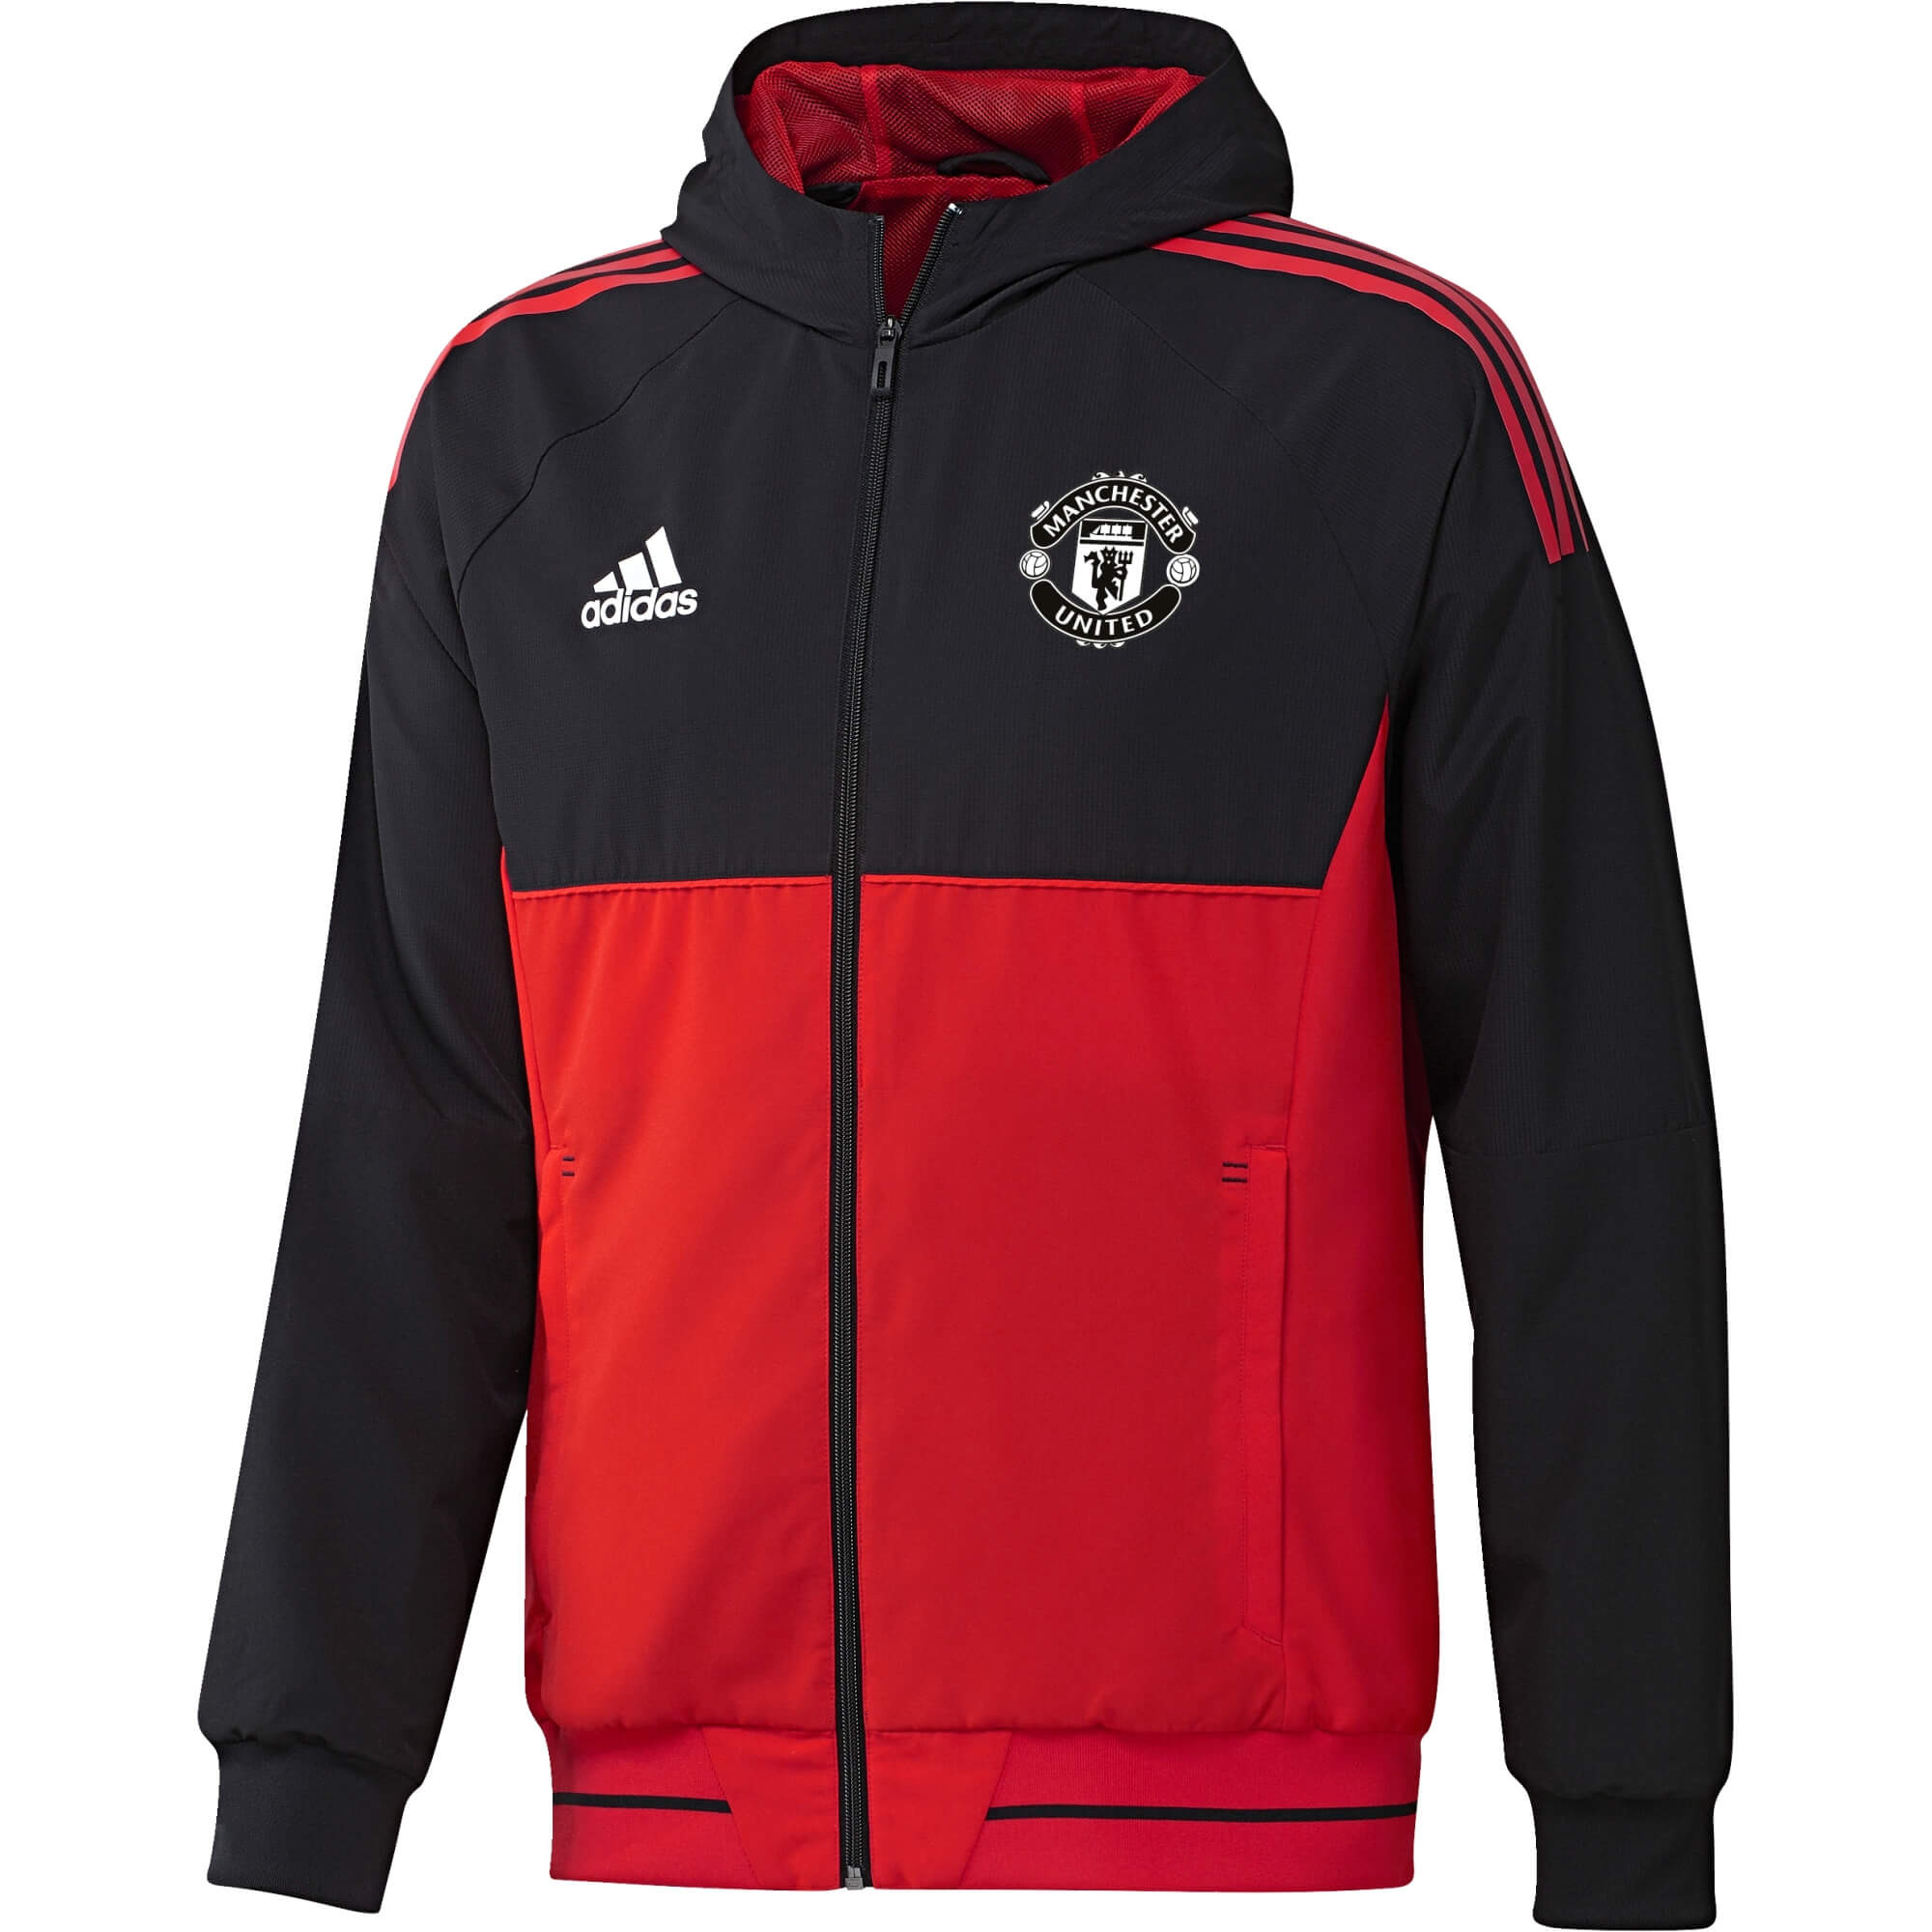 20172018 Jkt Pre Rayon Eu United Adidas Manchester Rouge Veste tIRqanYw